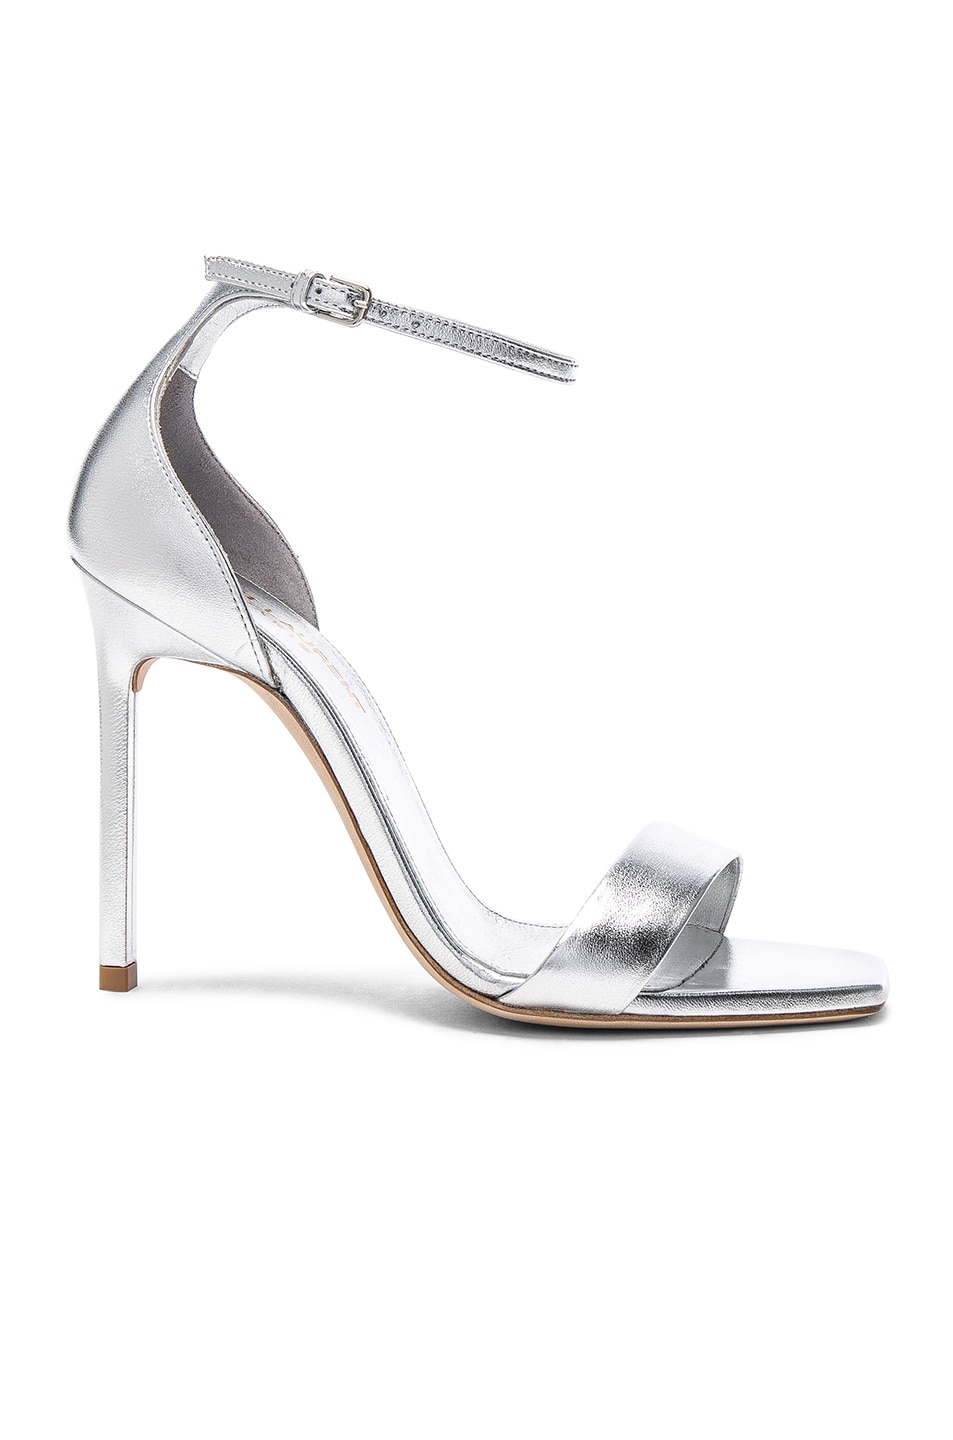 Image 1 of Saint Laurent Metallic Leather Amber Ankle Strap Heels in Silver